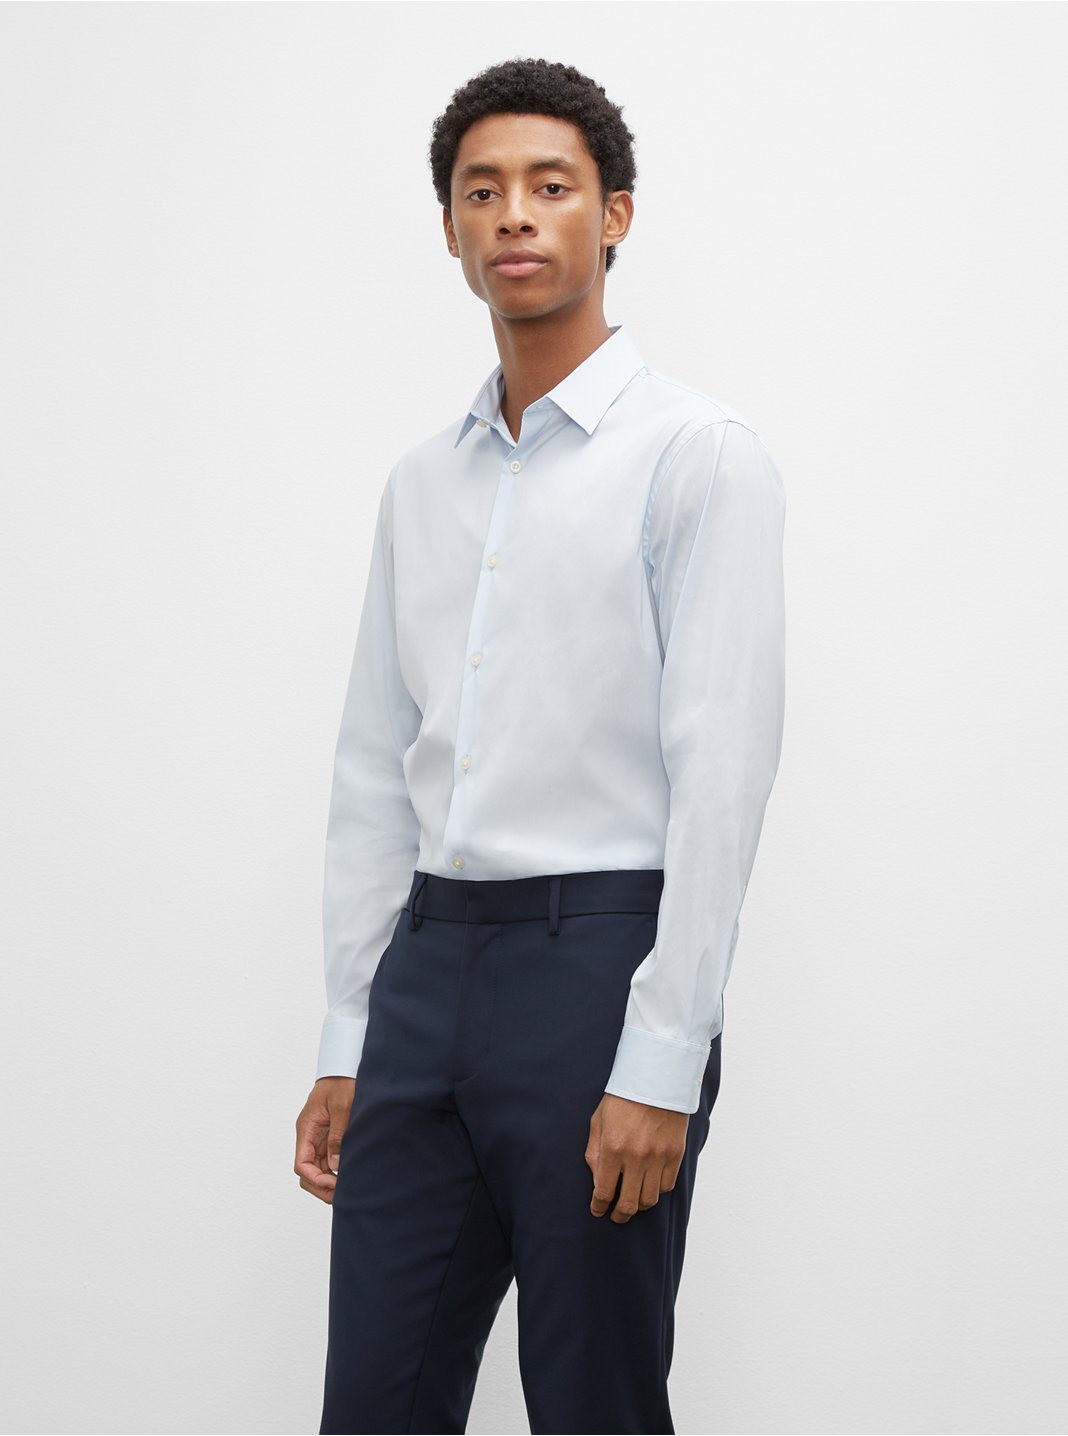 클럽 모나코 맨 셔츠 Club Monaco Stretch Poplin Dress Shirt